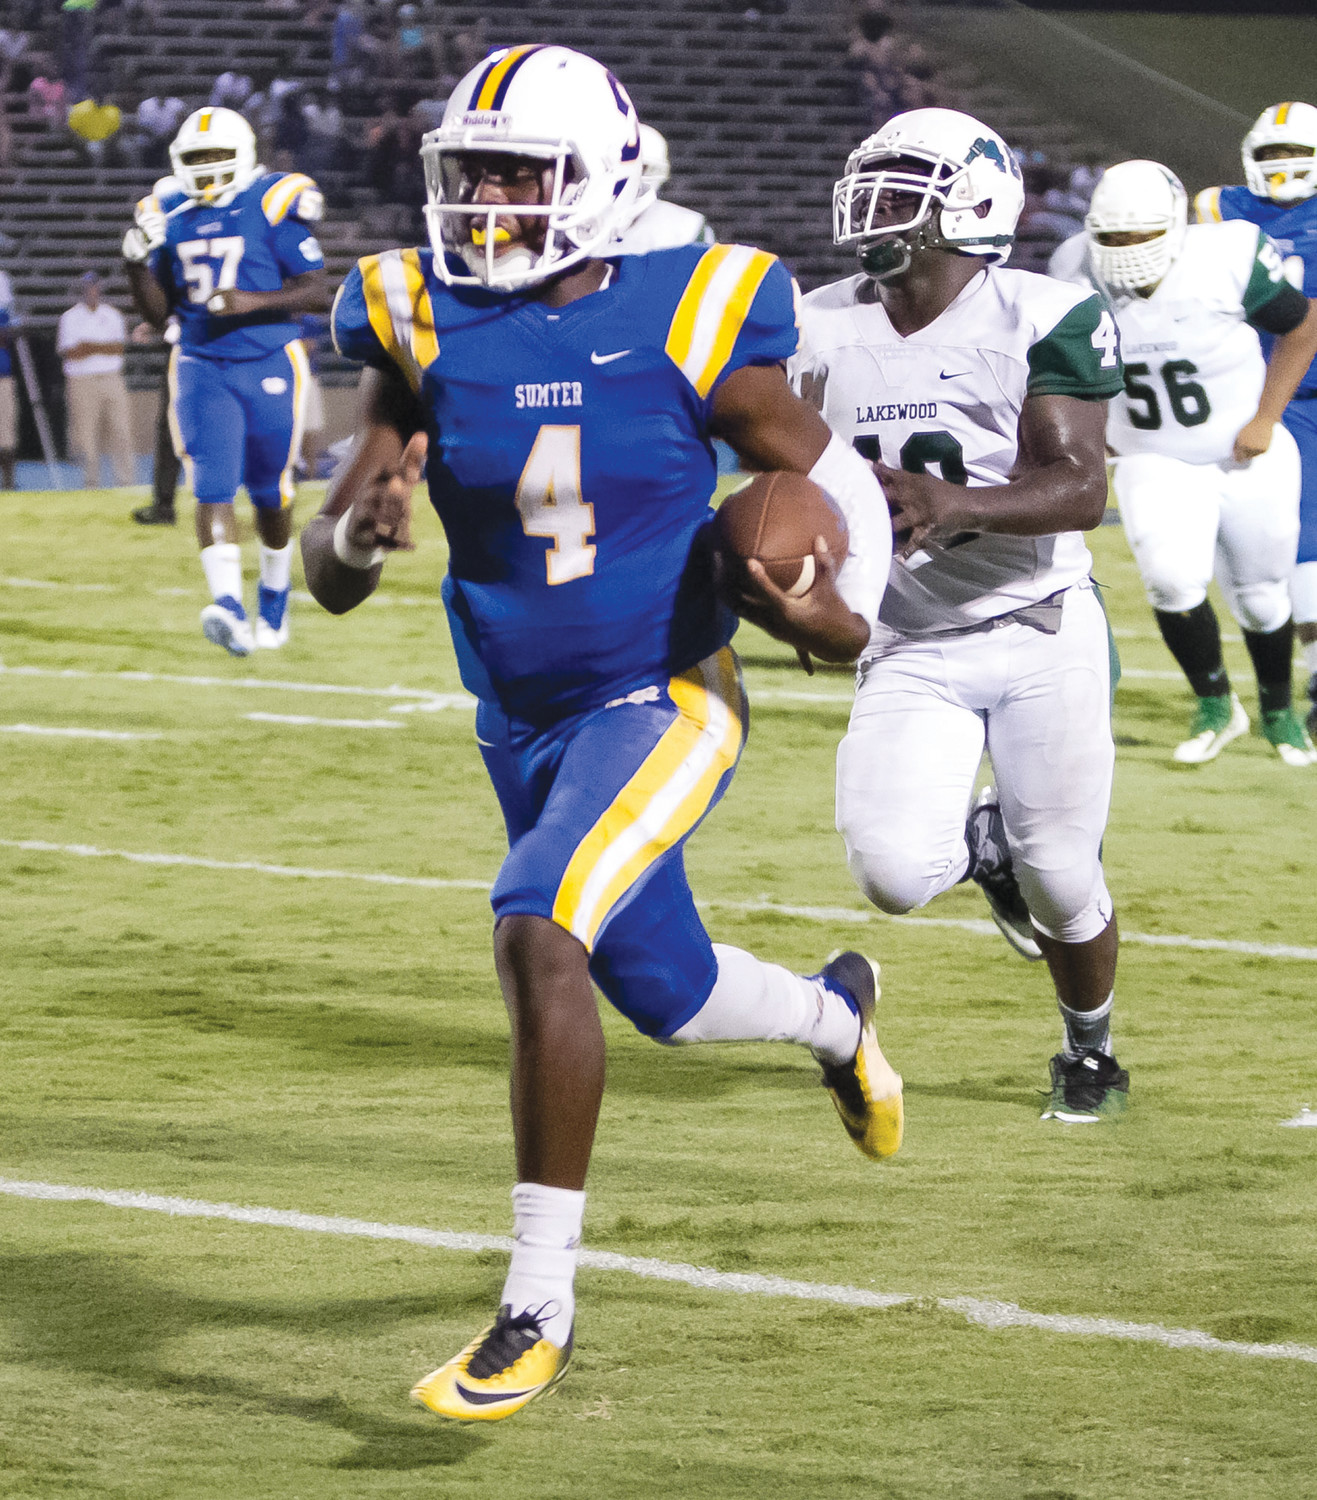 Sumter High quarterback Zykiem Jackson (4) gets away from the Lakewood defense during their 2017 game at Sumter High's Memorial Stadium. Jackson signed a letter of intent on Wednesday to play football at Highland Community College in Highland, Kansas.